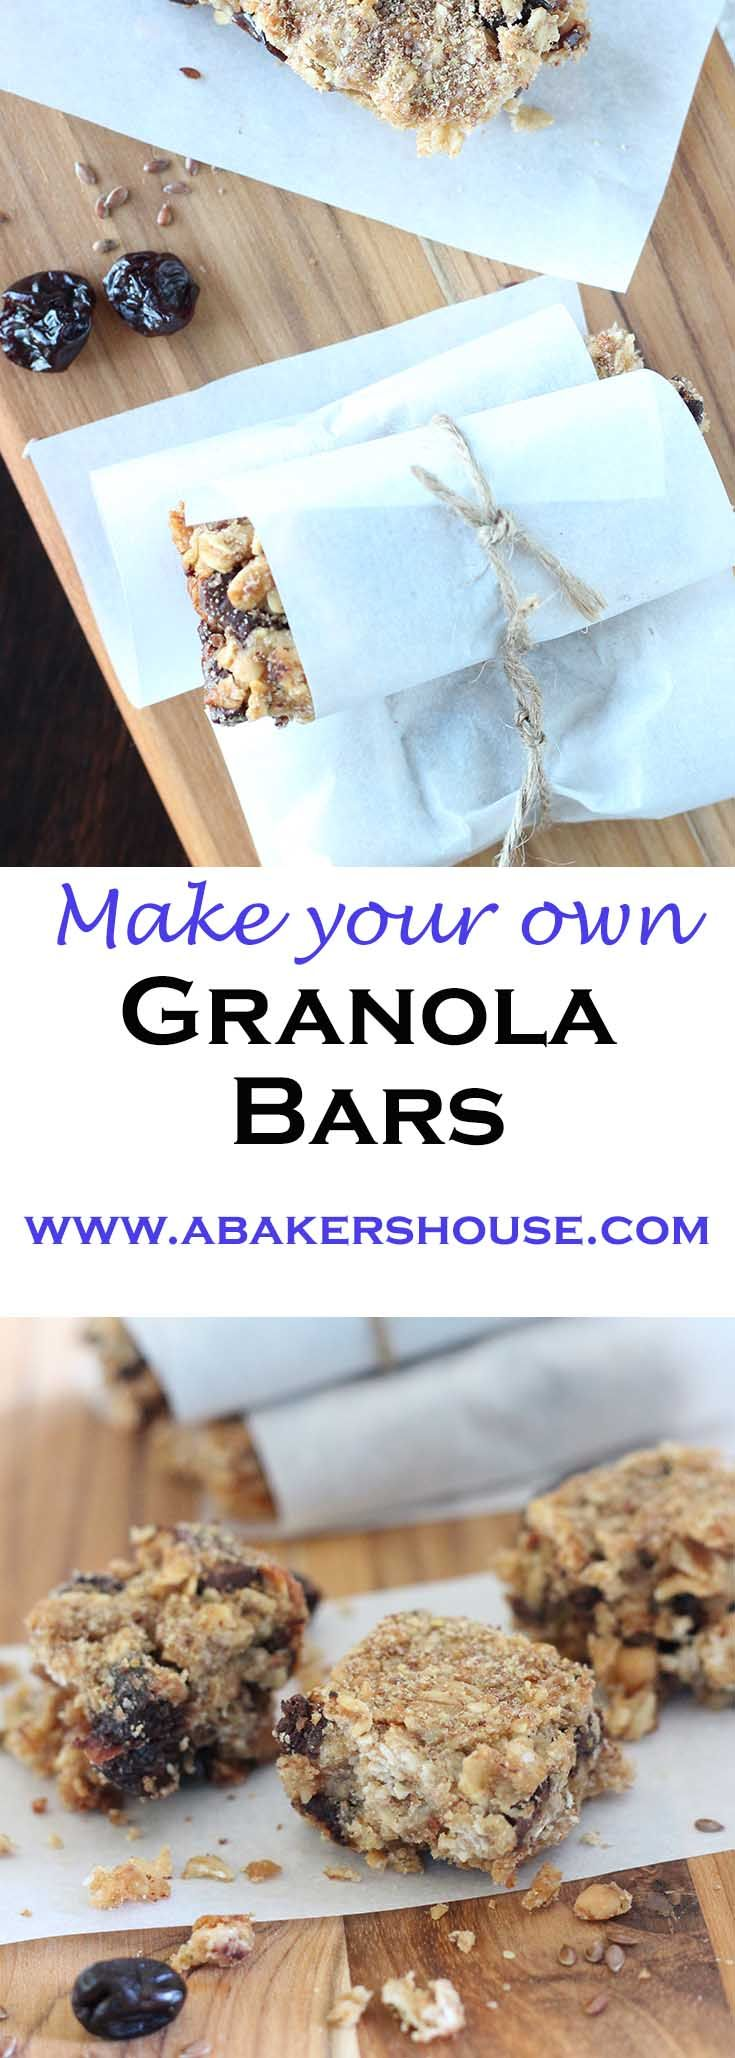 Make your own granola bars are the solution to snacking on the go. Filled with ingredients to help you refuel your energy when the tank is running low.